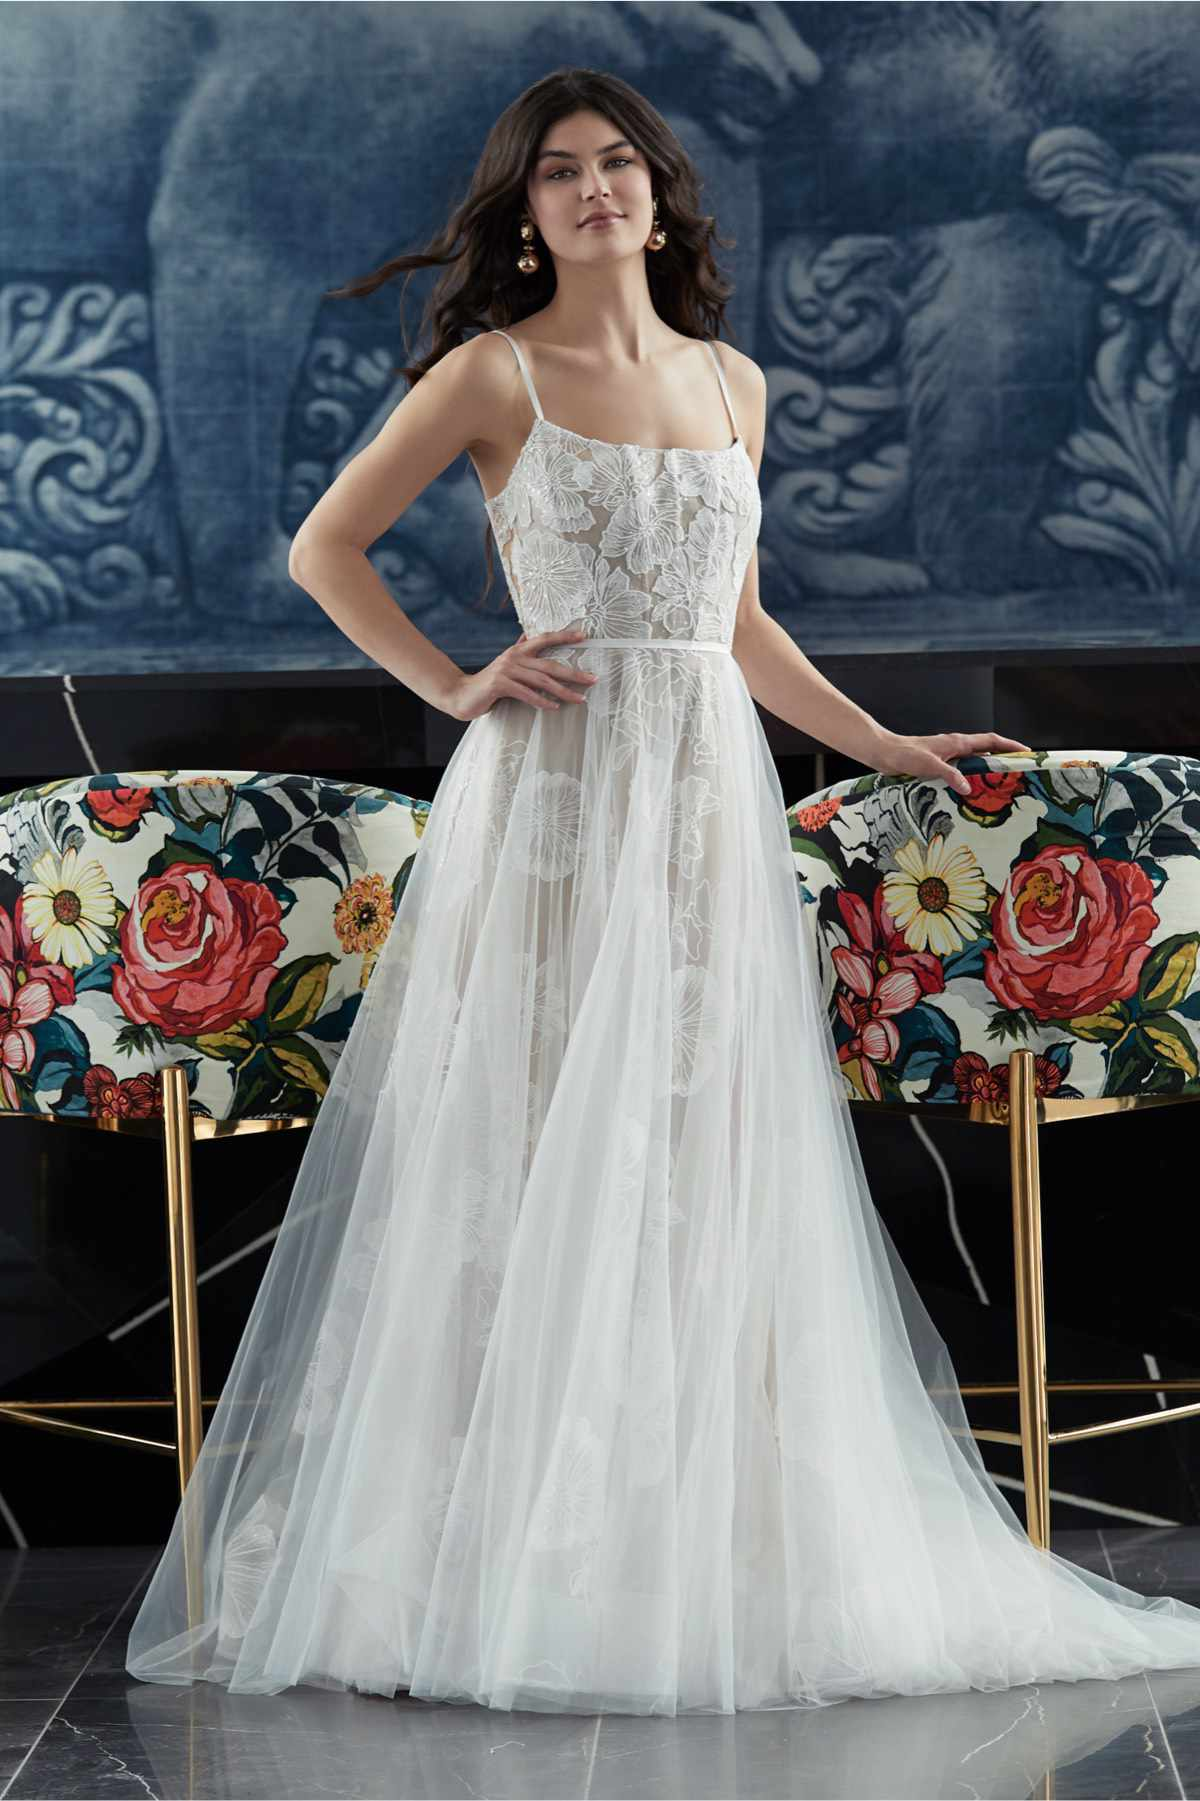 Model in allover floral lace gown with tulle A-line overskirt